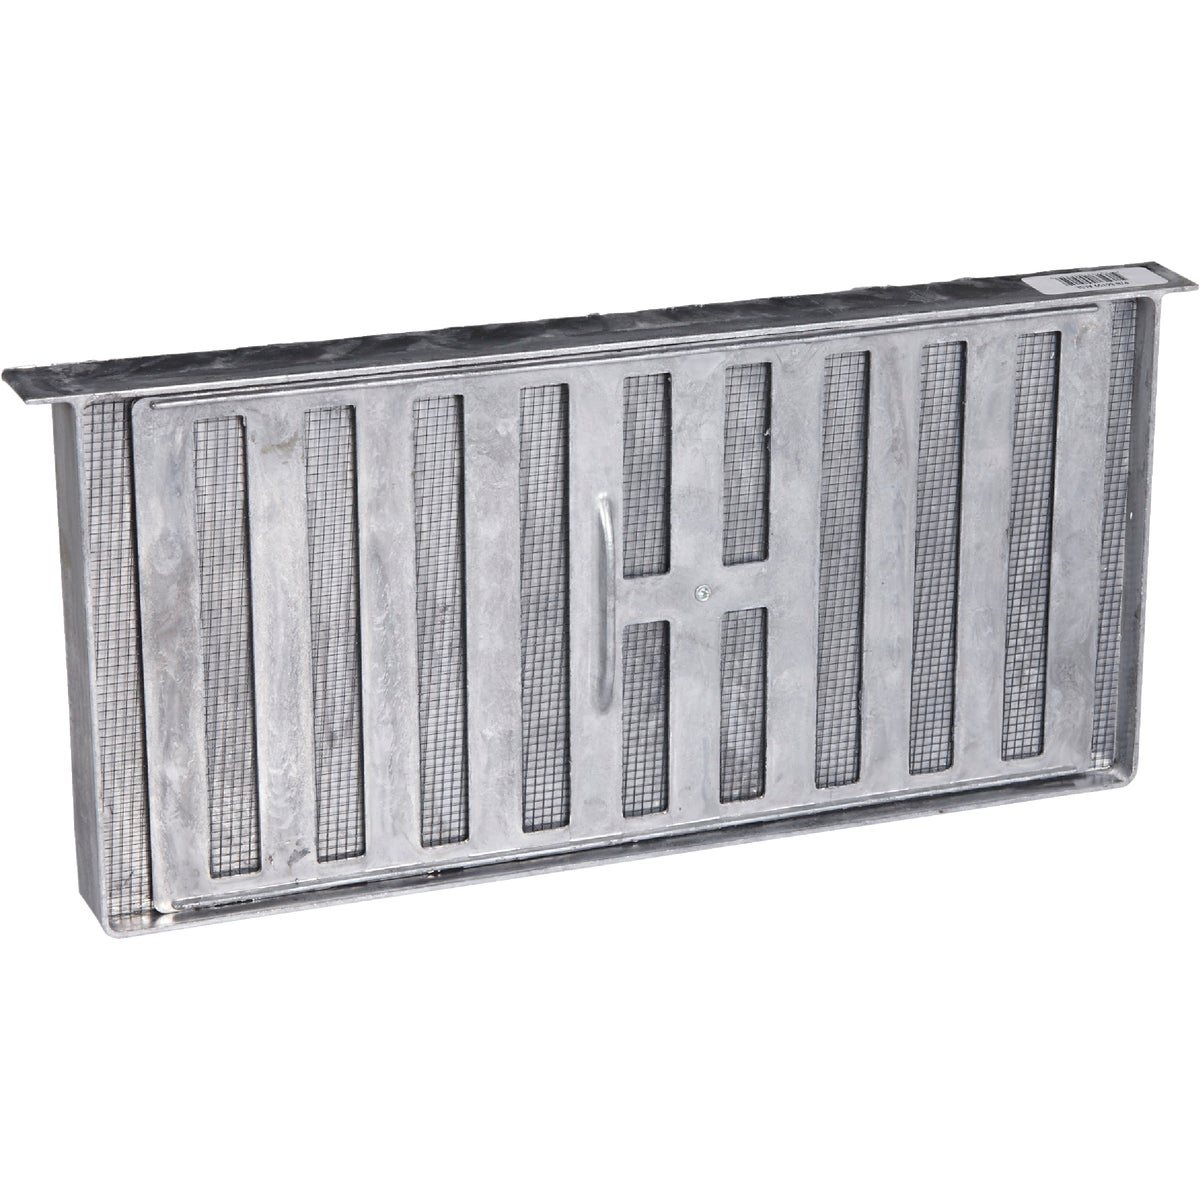 FOUNDATION VENT W/SLIDE - 86159 by Air Vent Inc